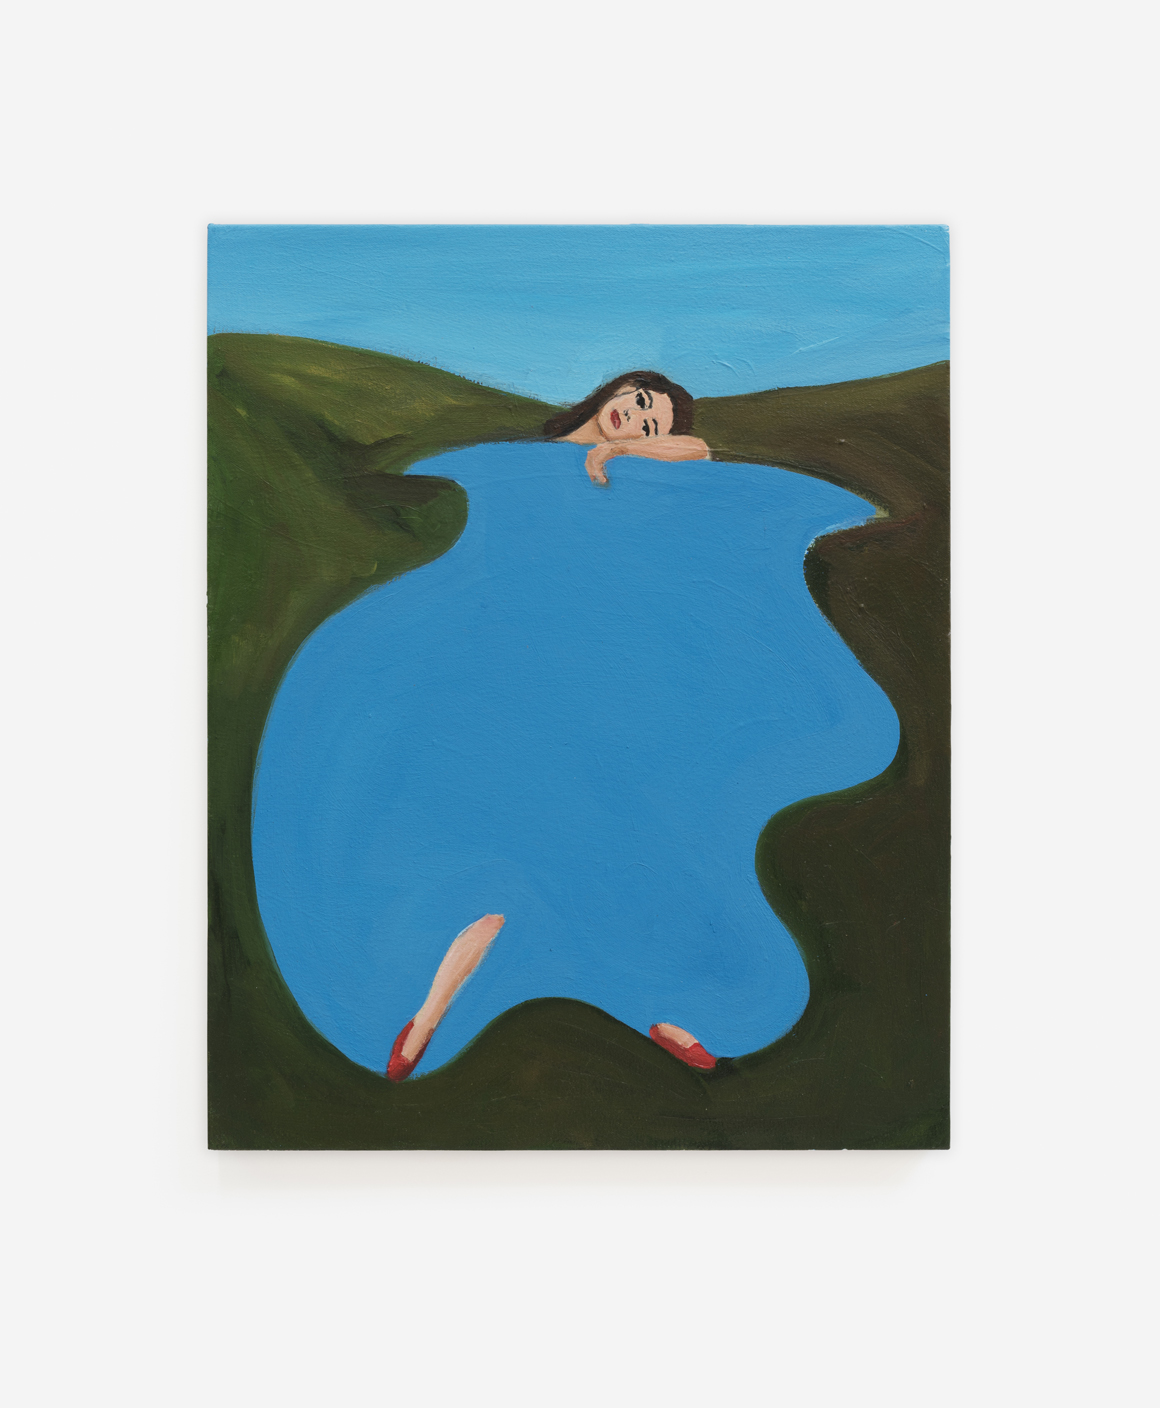 """<p><span class=""""name"""">Becky Kolsrud</span><br><em>Lady of the Lake (Study)</em><span class='media'>Oil on canvas</span>20 x 16 in (50.8 x 40.6 cm)<br>2018<br></p>"""